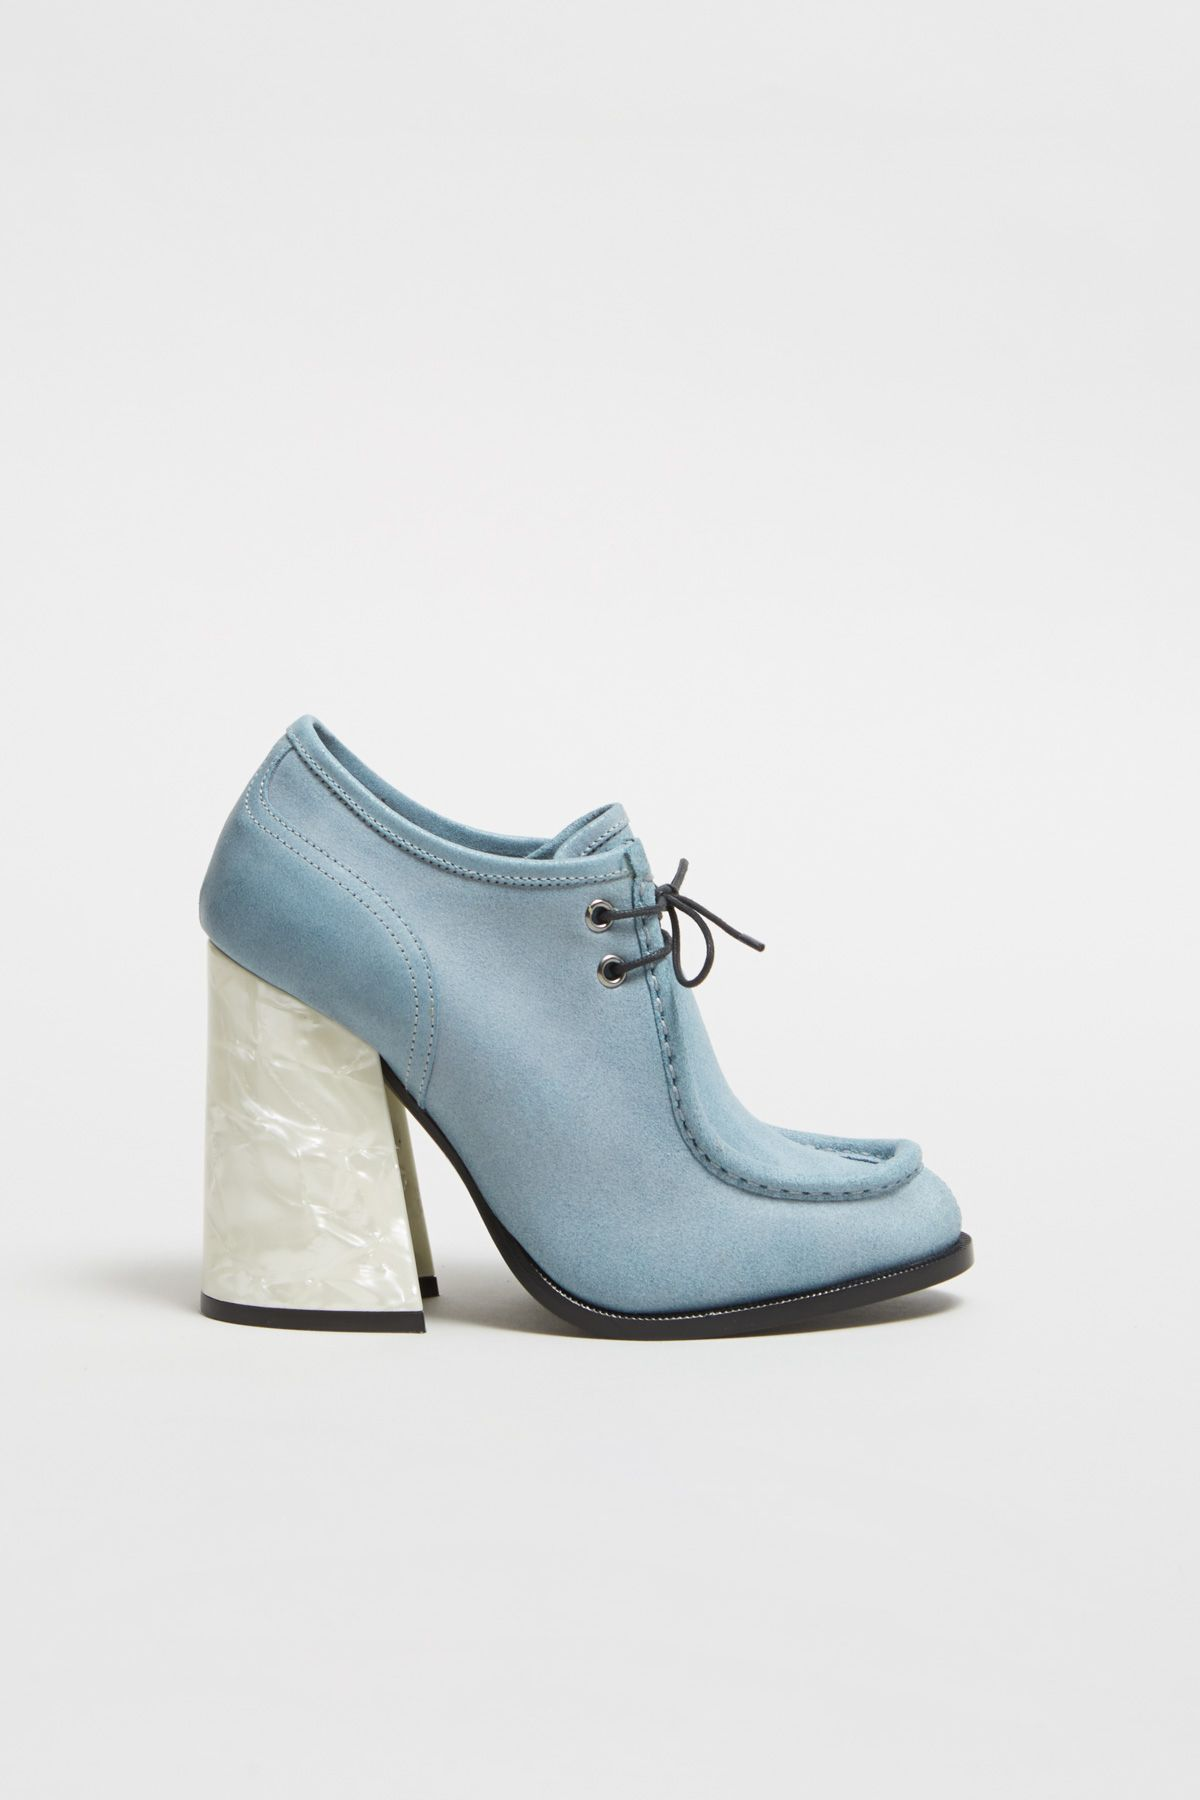 JW Anderson Blue Suede Mother Sneakers 8O0pexG